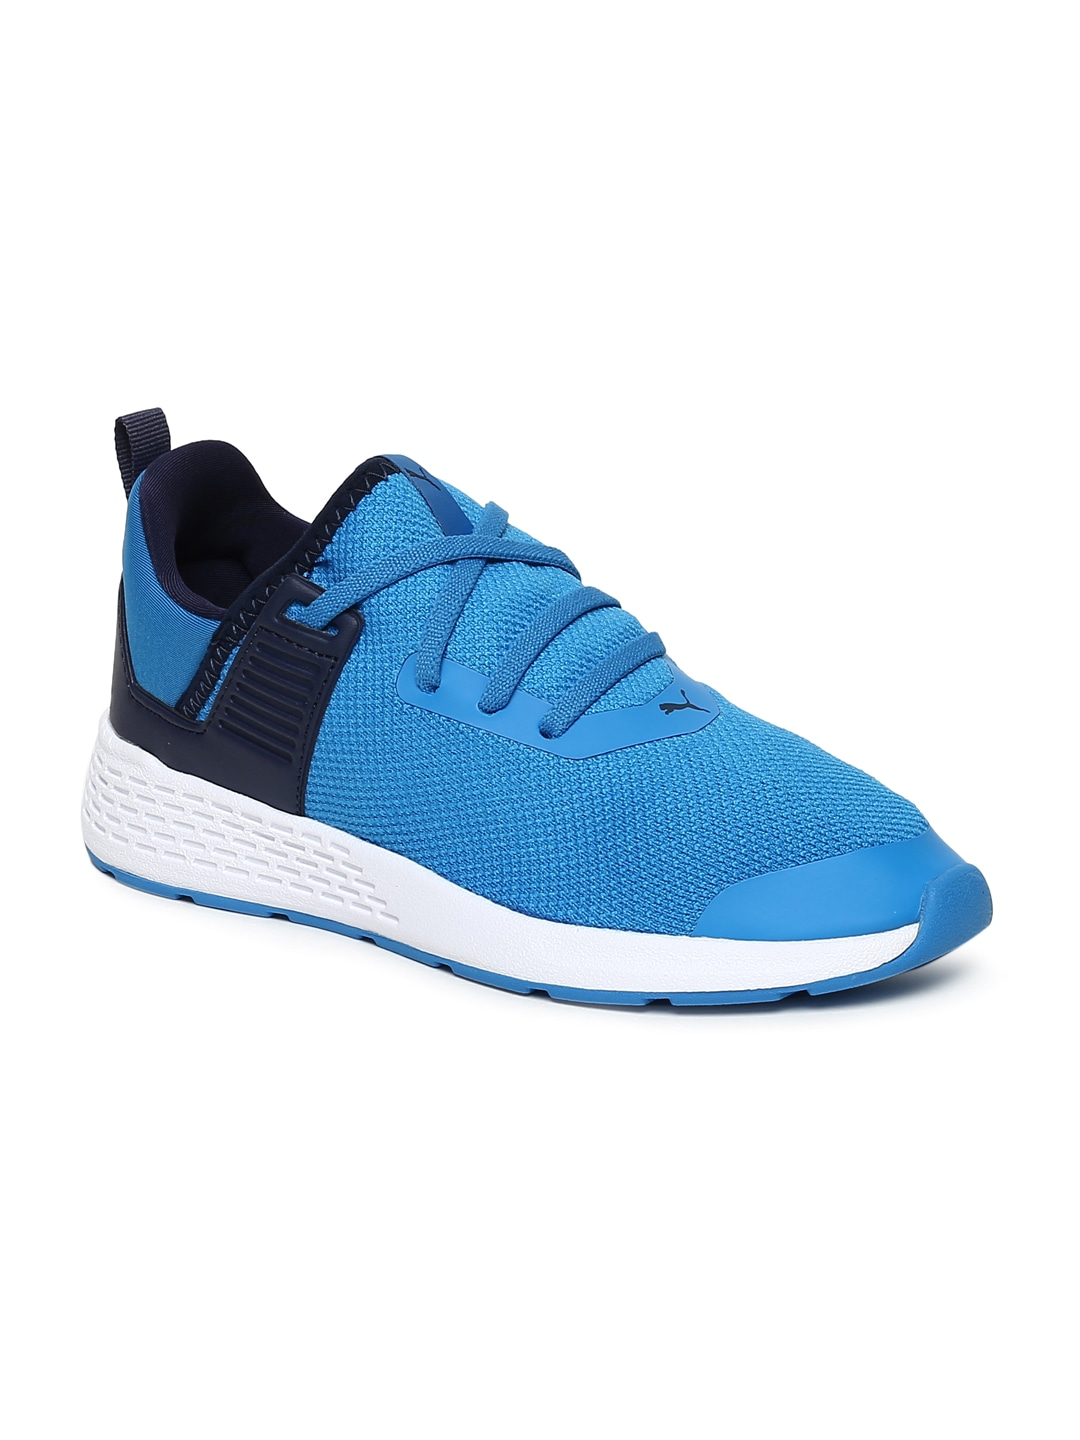 0aa84c8f37e8c Girls Shoes - Online Shopping of Shoes for Girls in India